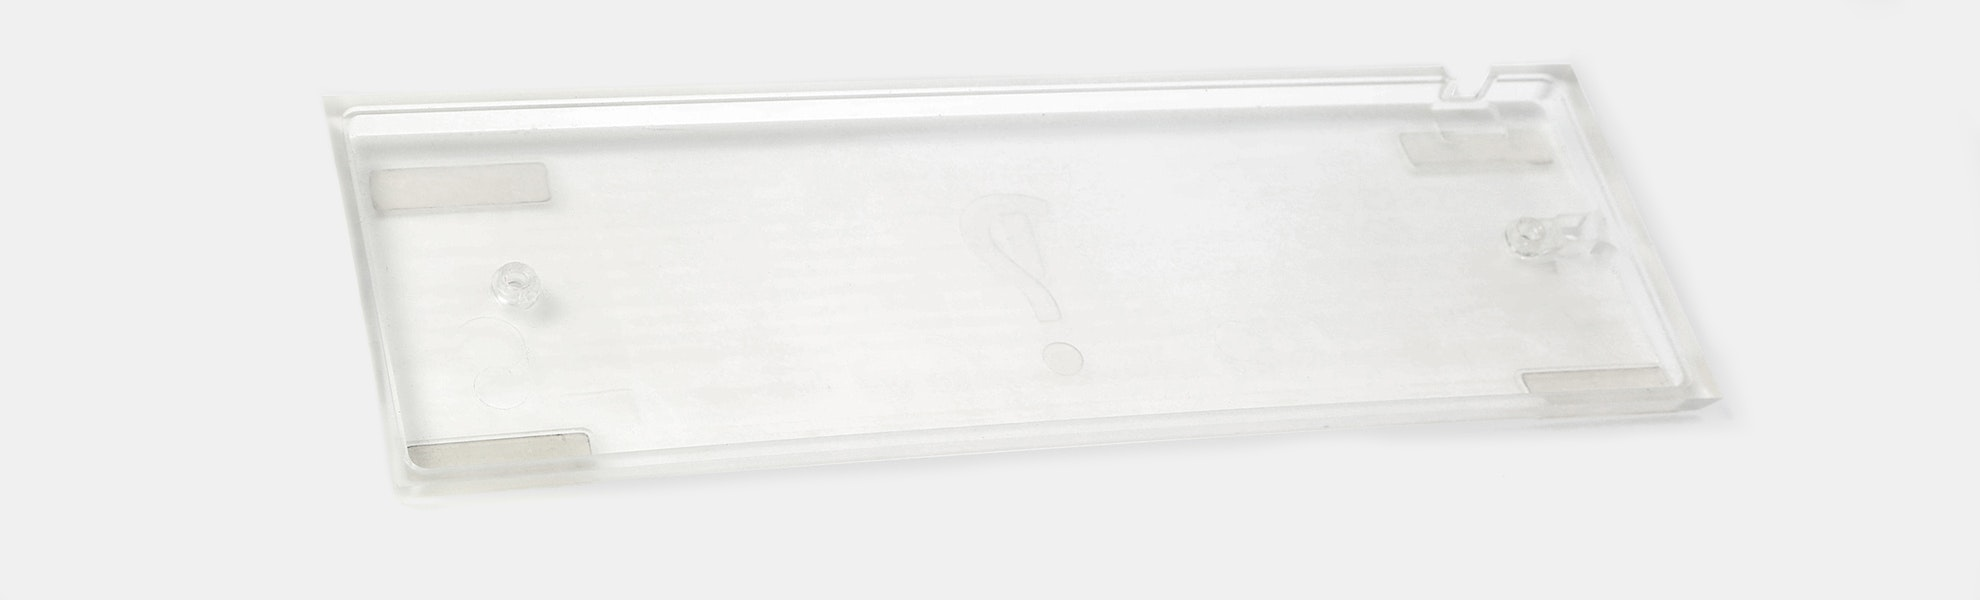 Clueboard Polycarb Translucent Keyboard Case